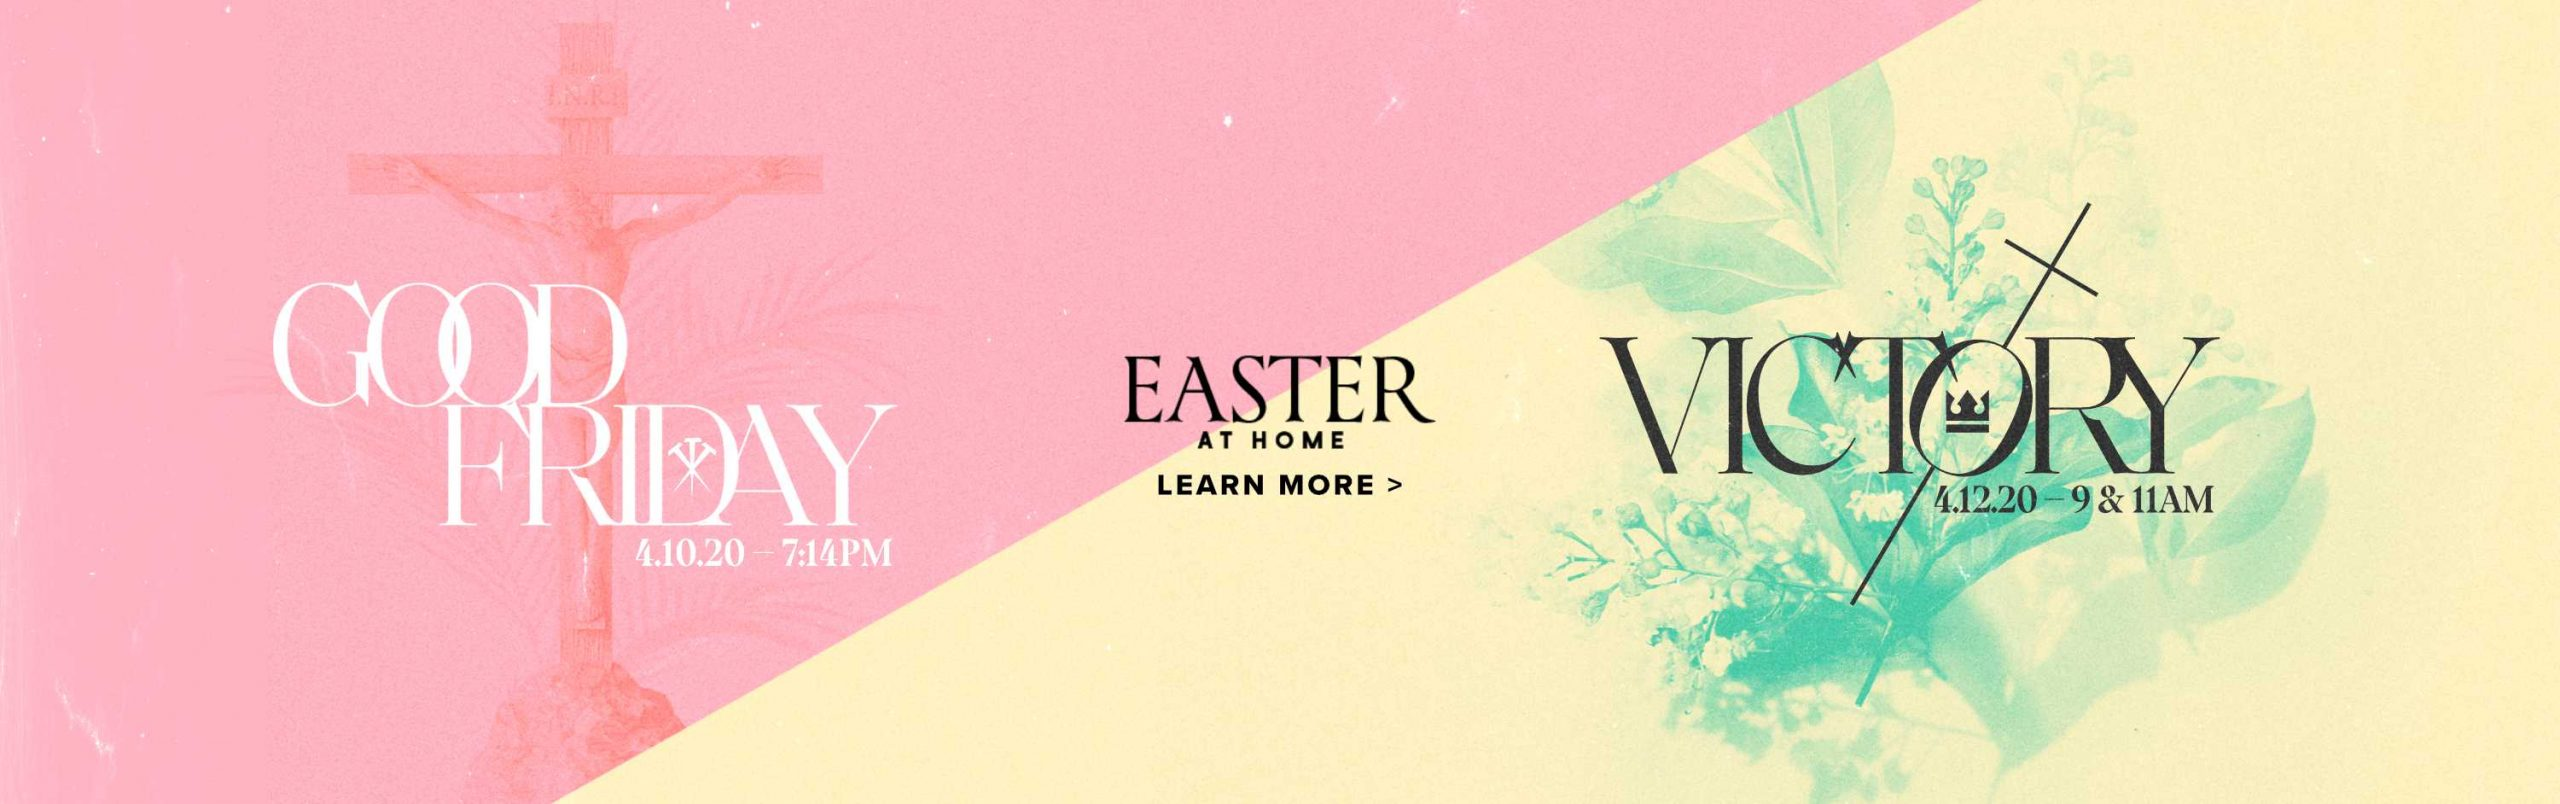 Easter Church Services in Jennings, Crowley, Eunice, LA